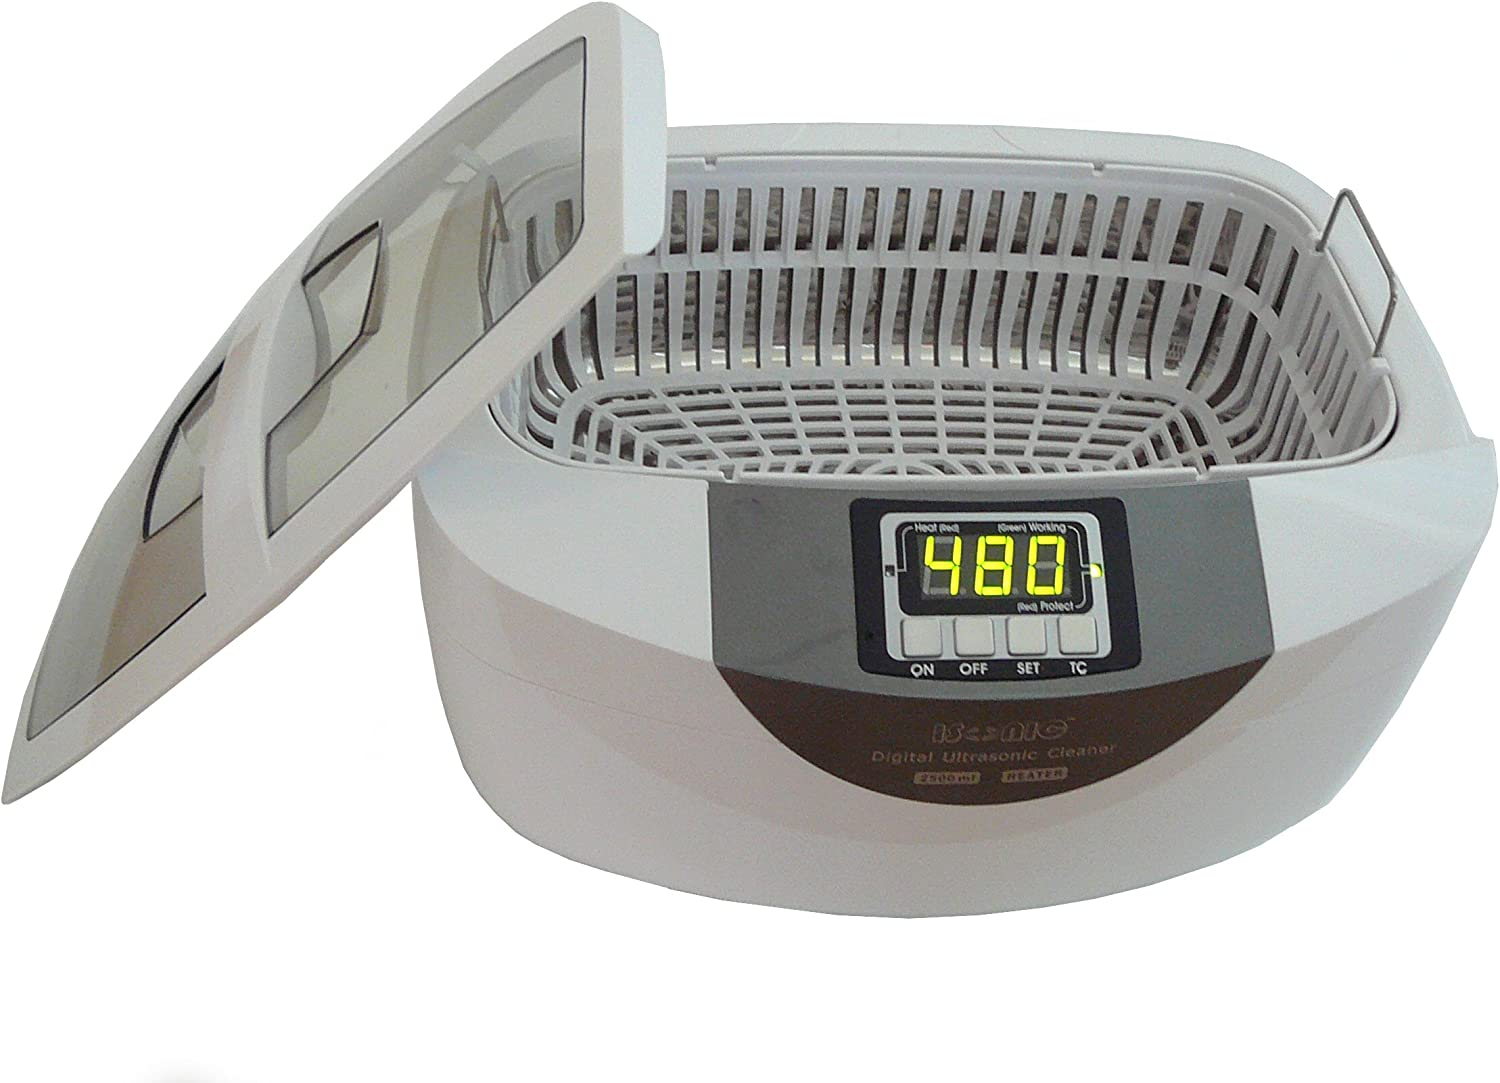 iSonic Professional Grade Ultrasonic Cleaner P4820-WPB with Heater and Digital Timer, Plastic Basket